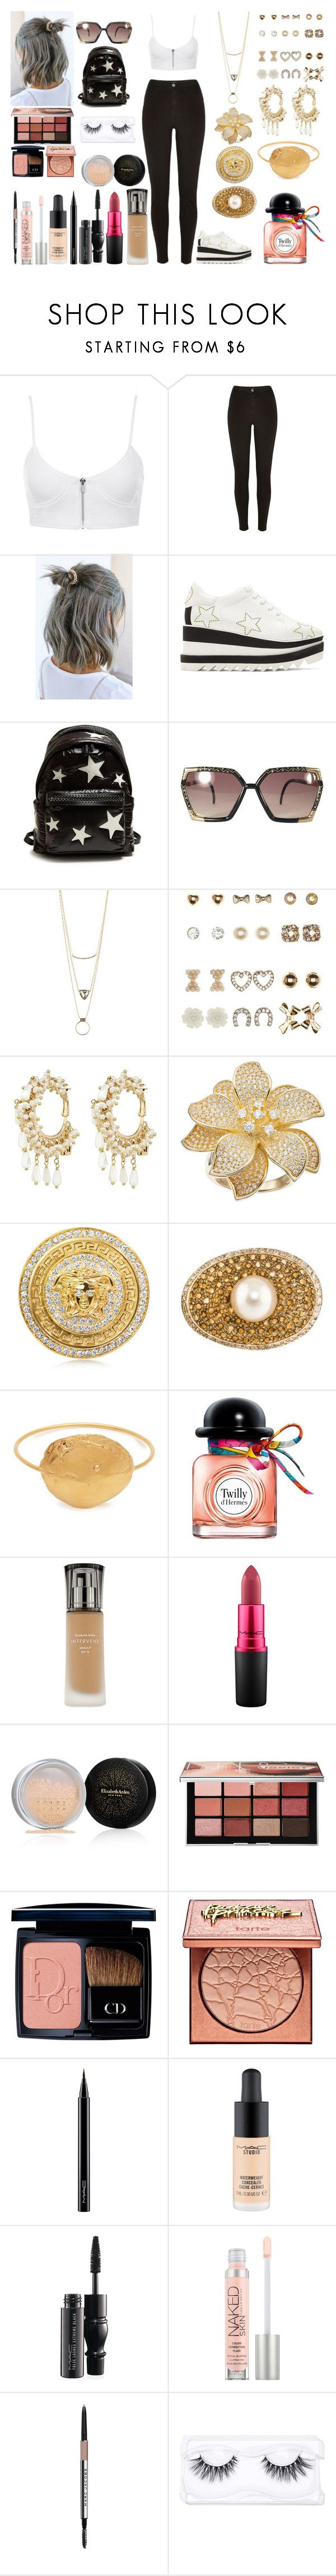 """""""Untitled #1250"""" by asiebenthaler ❤ liked on Polyvore featuring River Island, Invisibobble, STELLA McCARTNEY, Ted Lapidus, Charlotte Russe, Rosantica, Alighieri, Hermès, Elizabeth Arden and MAC Cosmetics"""